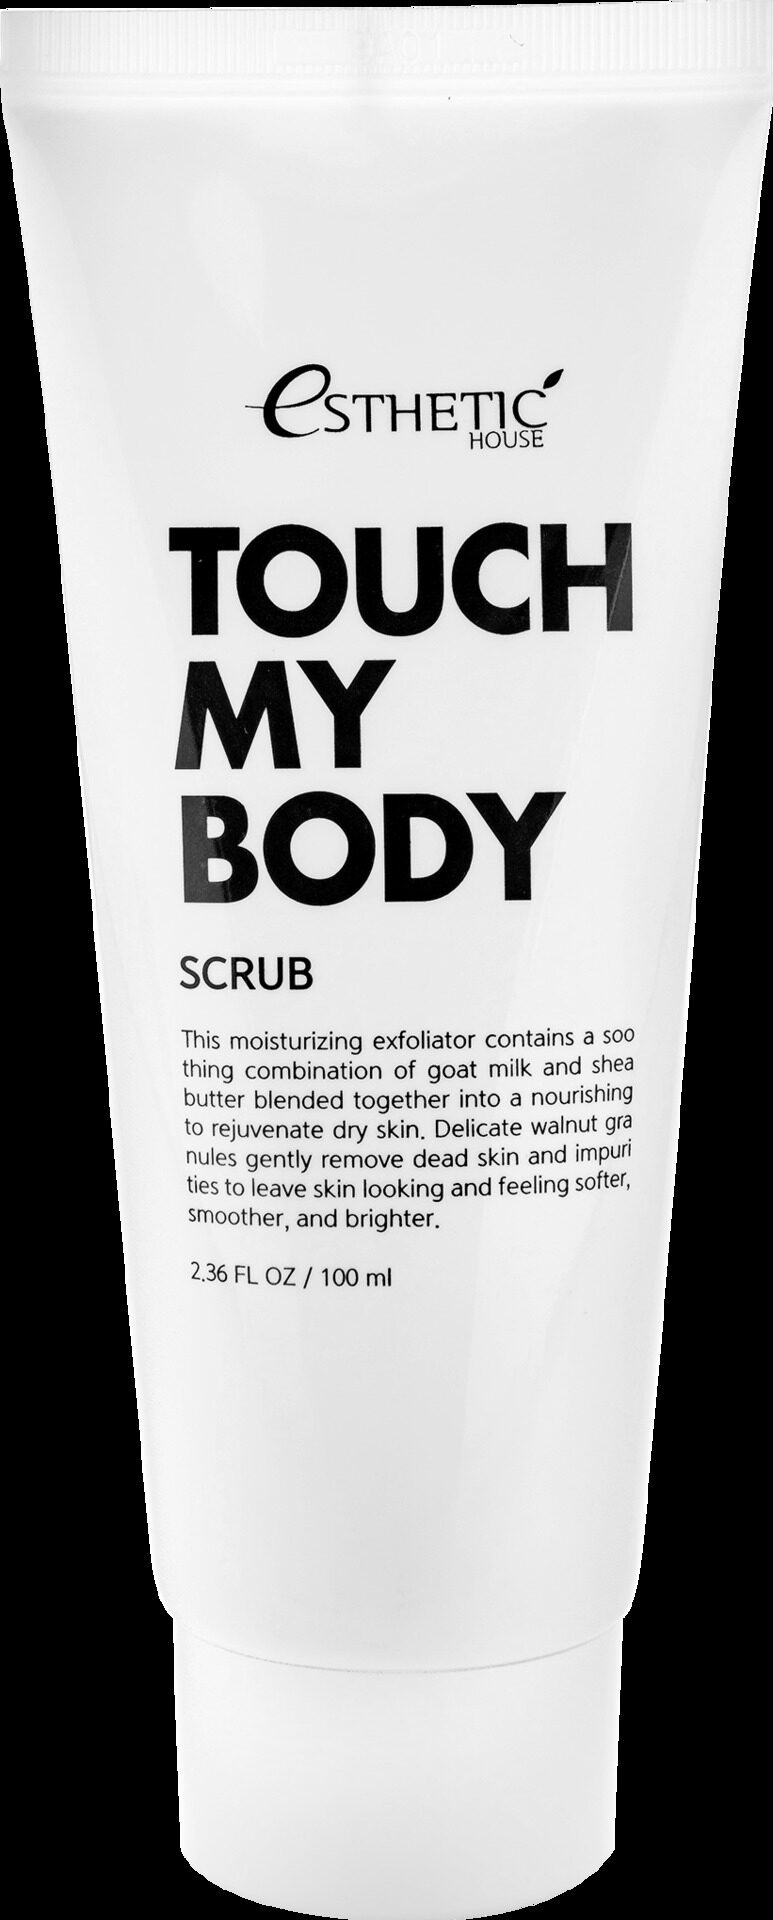 [ESTHETIC HOUSE] Скраб для тела КОЗЬЕ МОЛОКО Touch My Body Goat Milk Body Scrub, 100 м